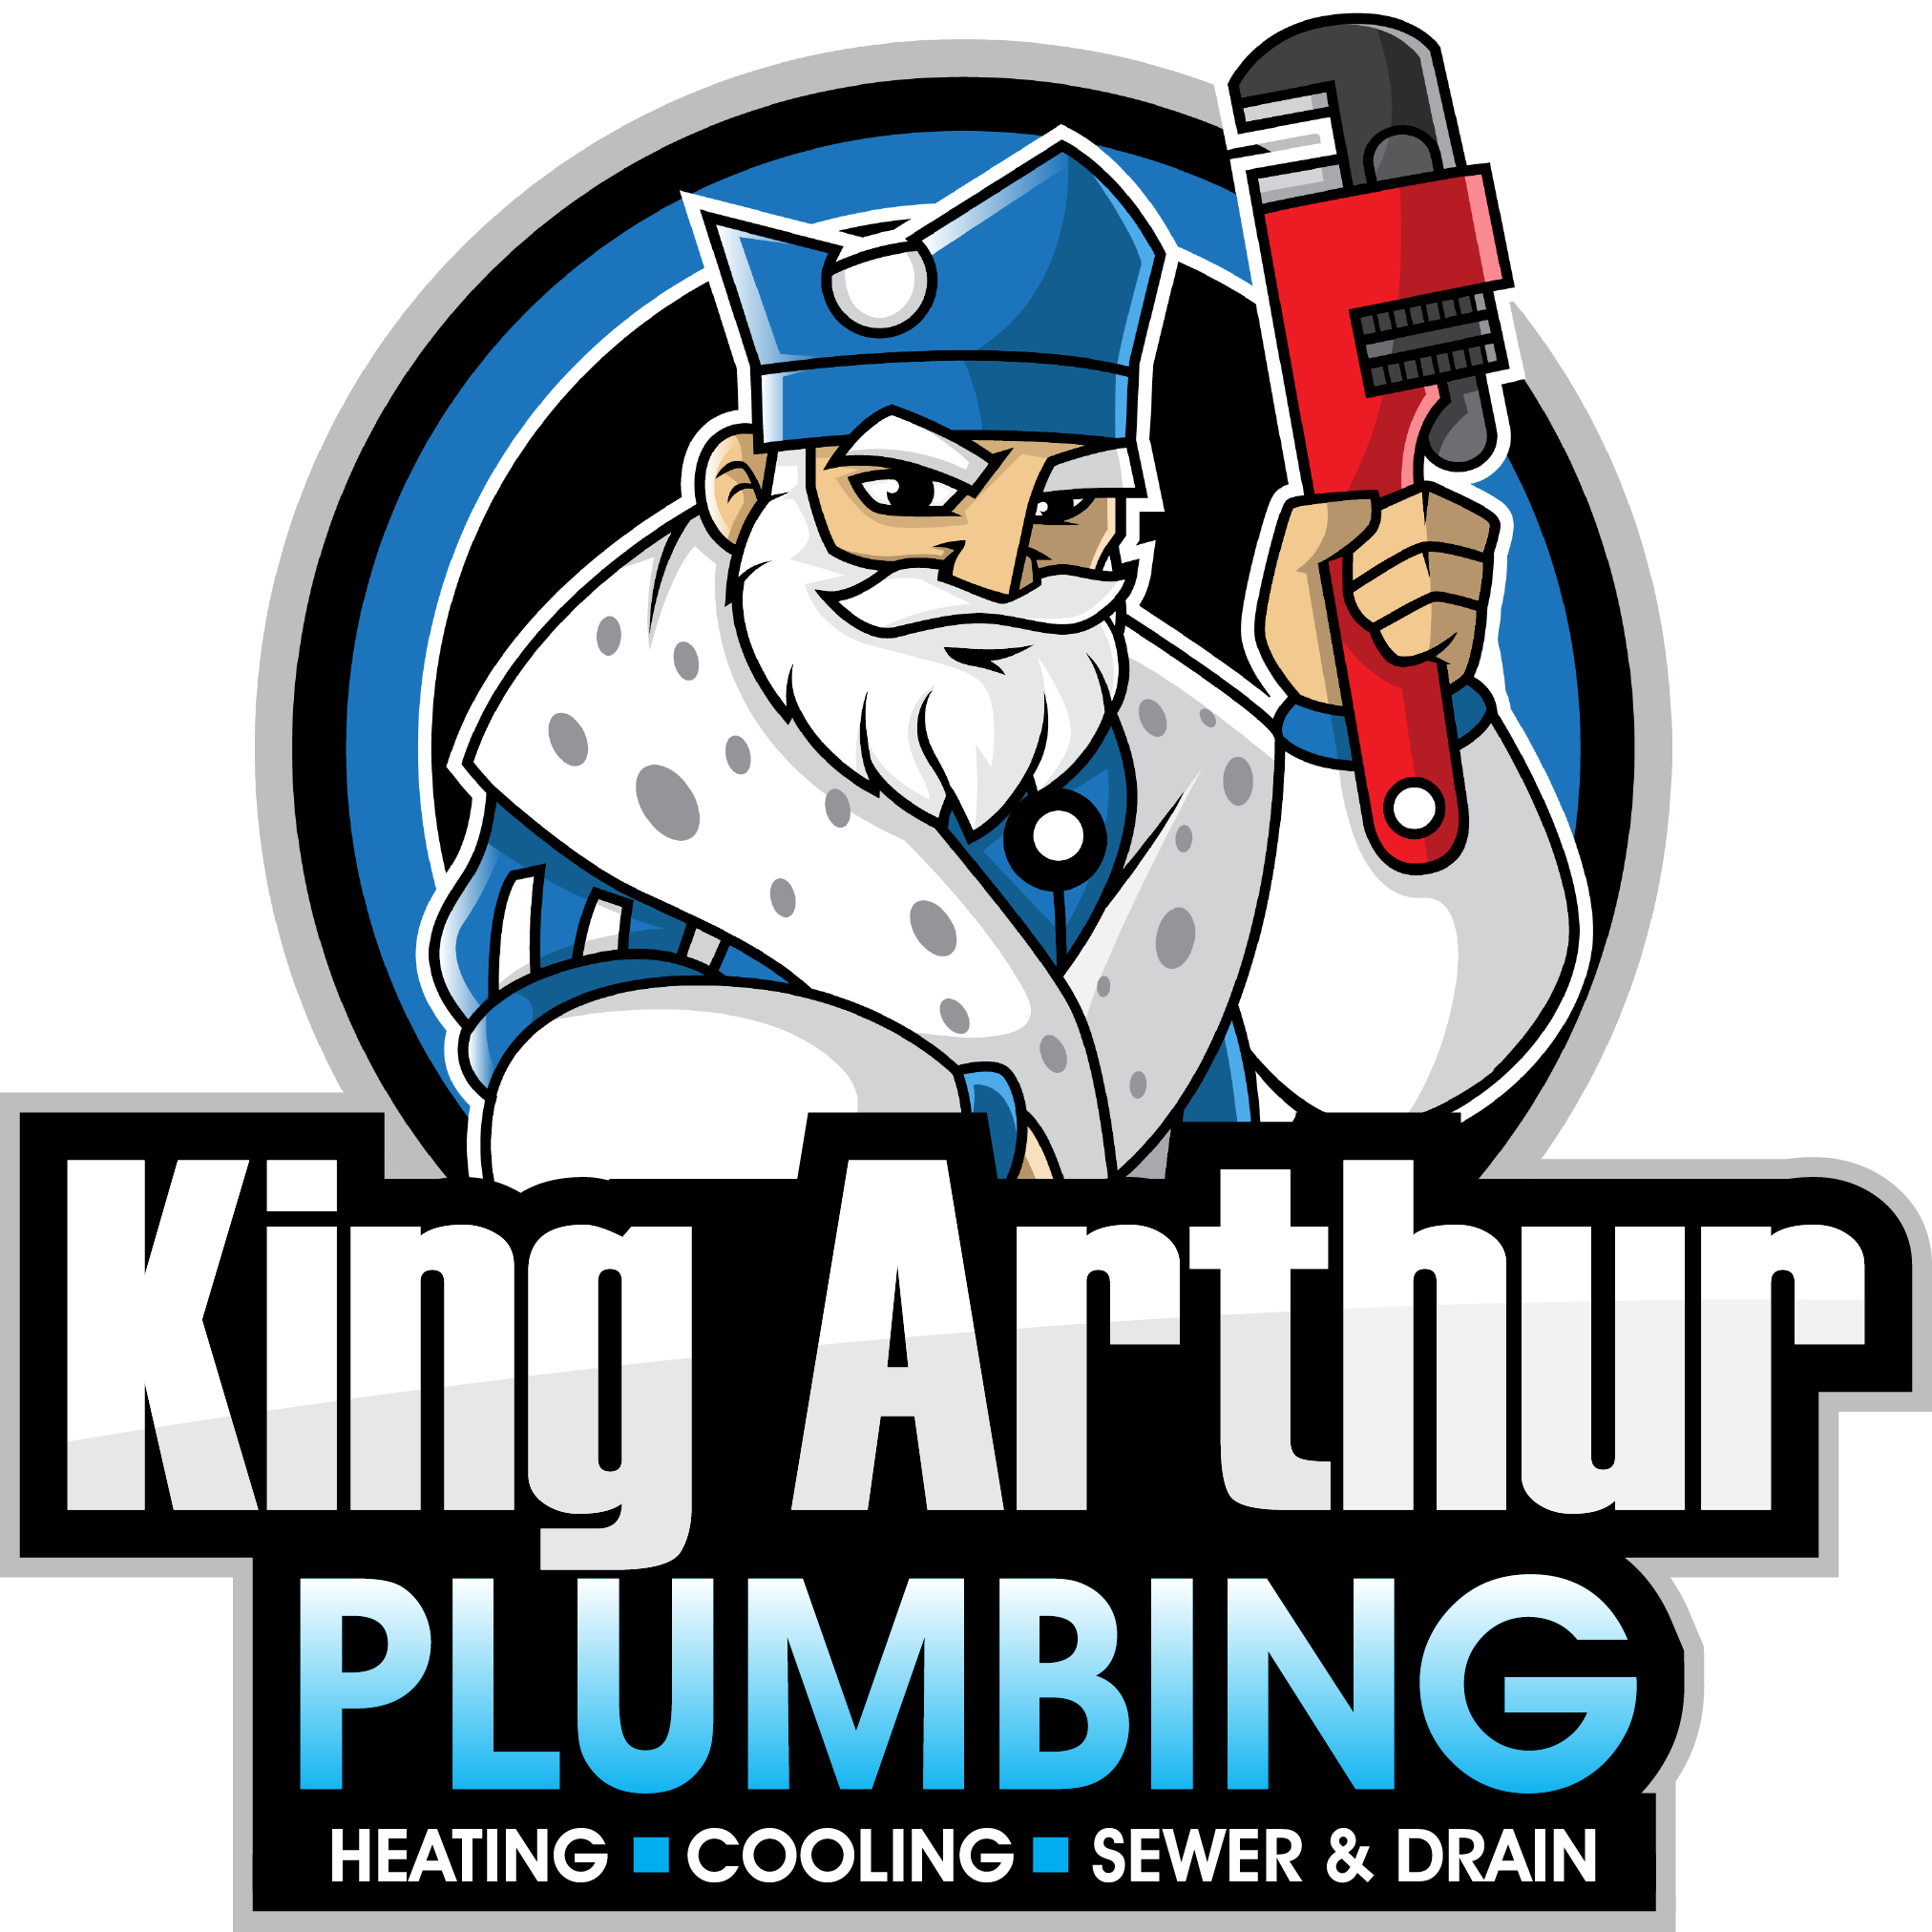 Flood clipart flooded bathroom. Air conditioner repair conditioning